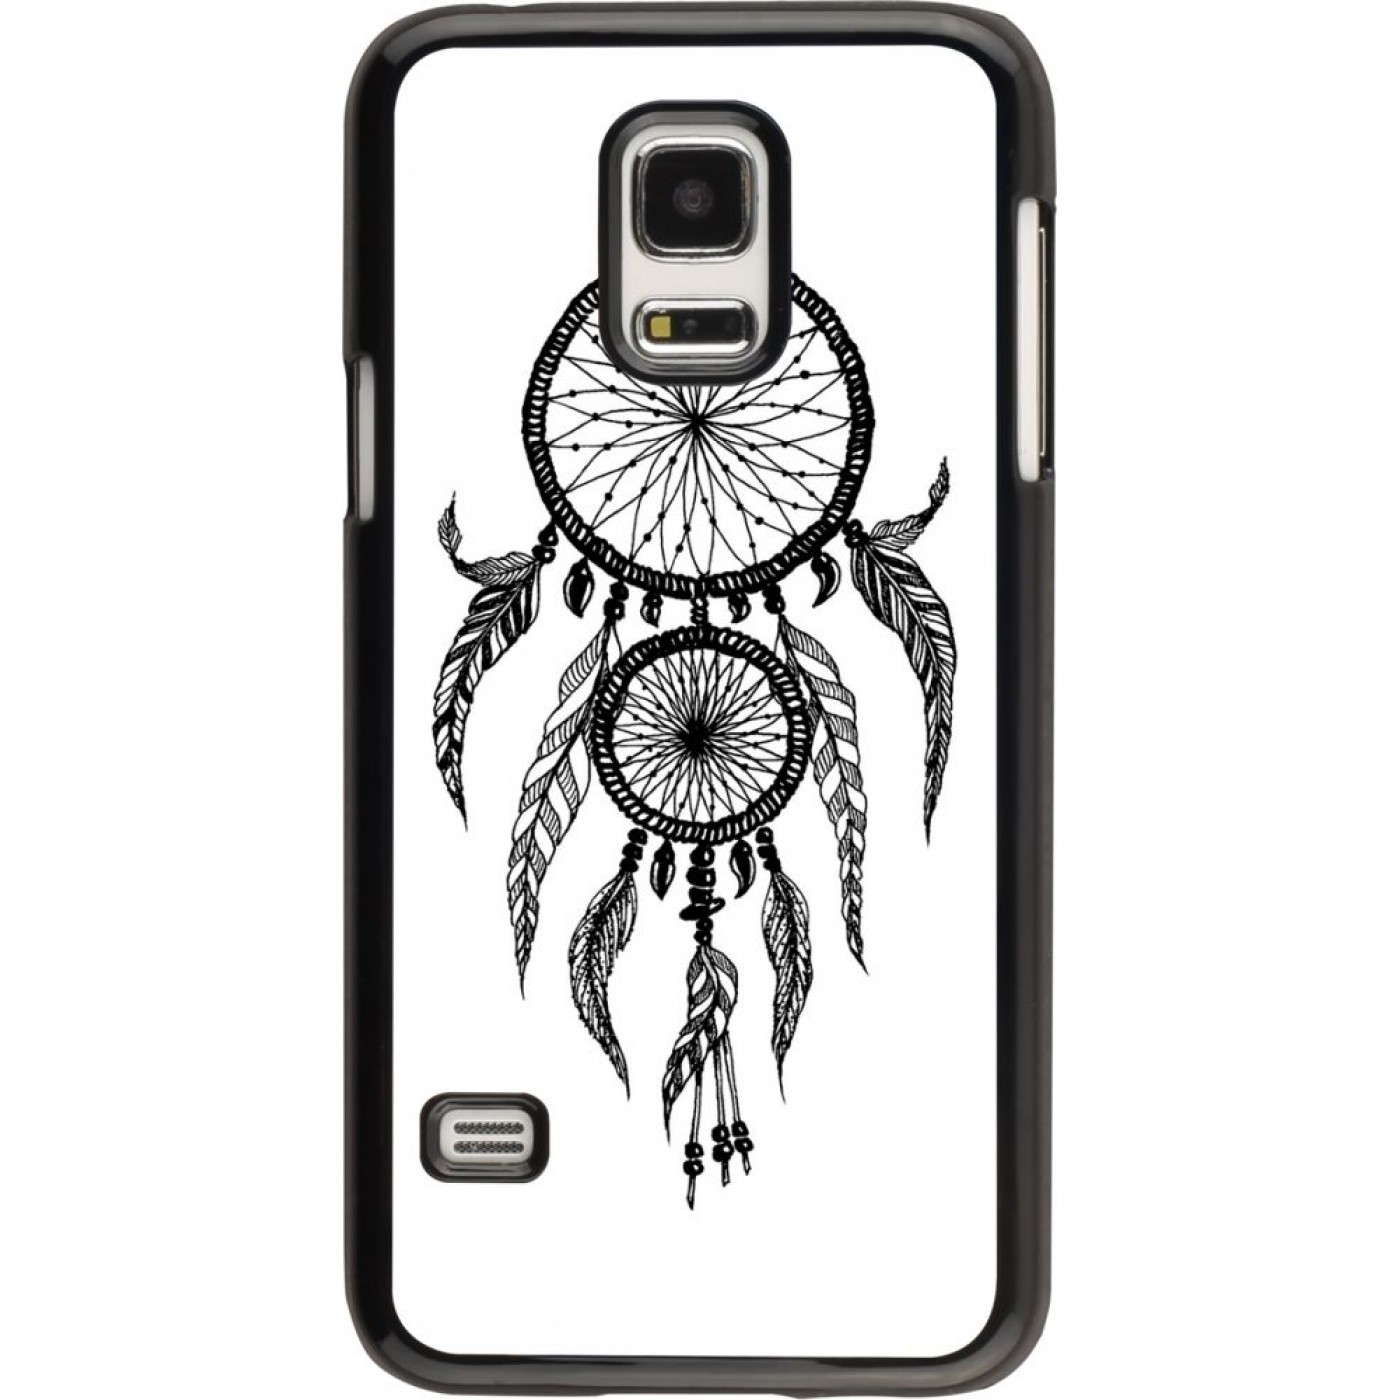 h lle galaxy s5 mini dreamcatcher 02. Black Bedroom Furniture Sets. Home Design Ideas